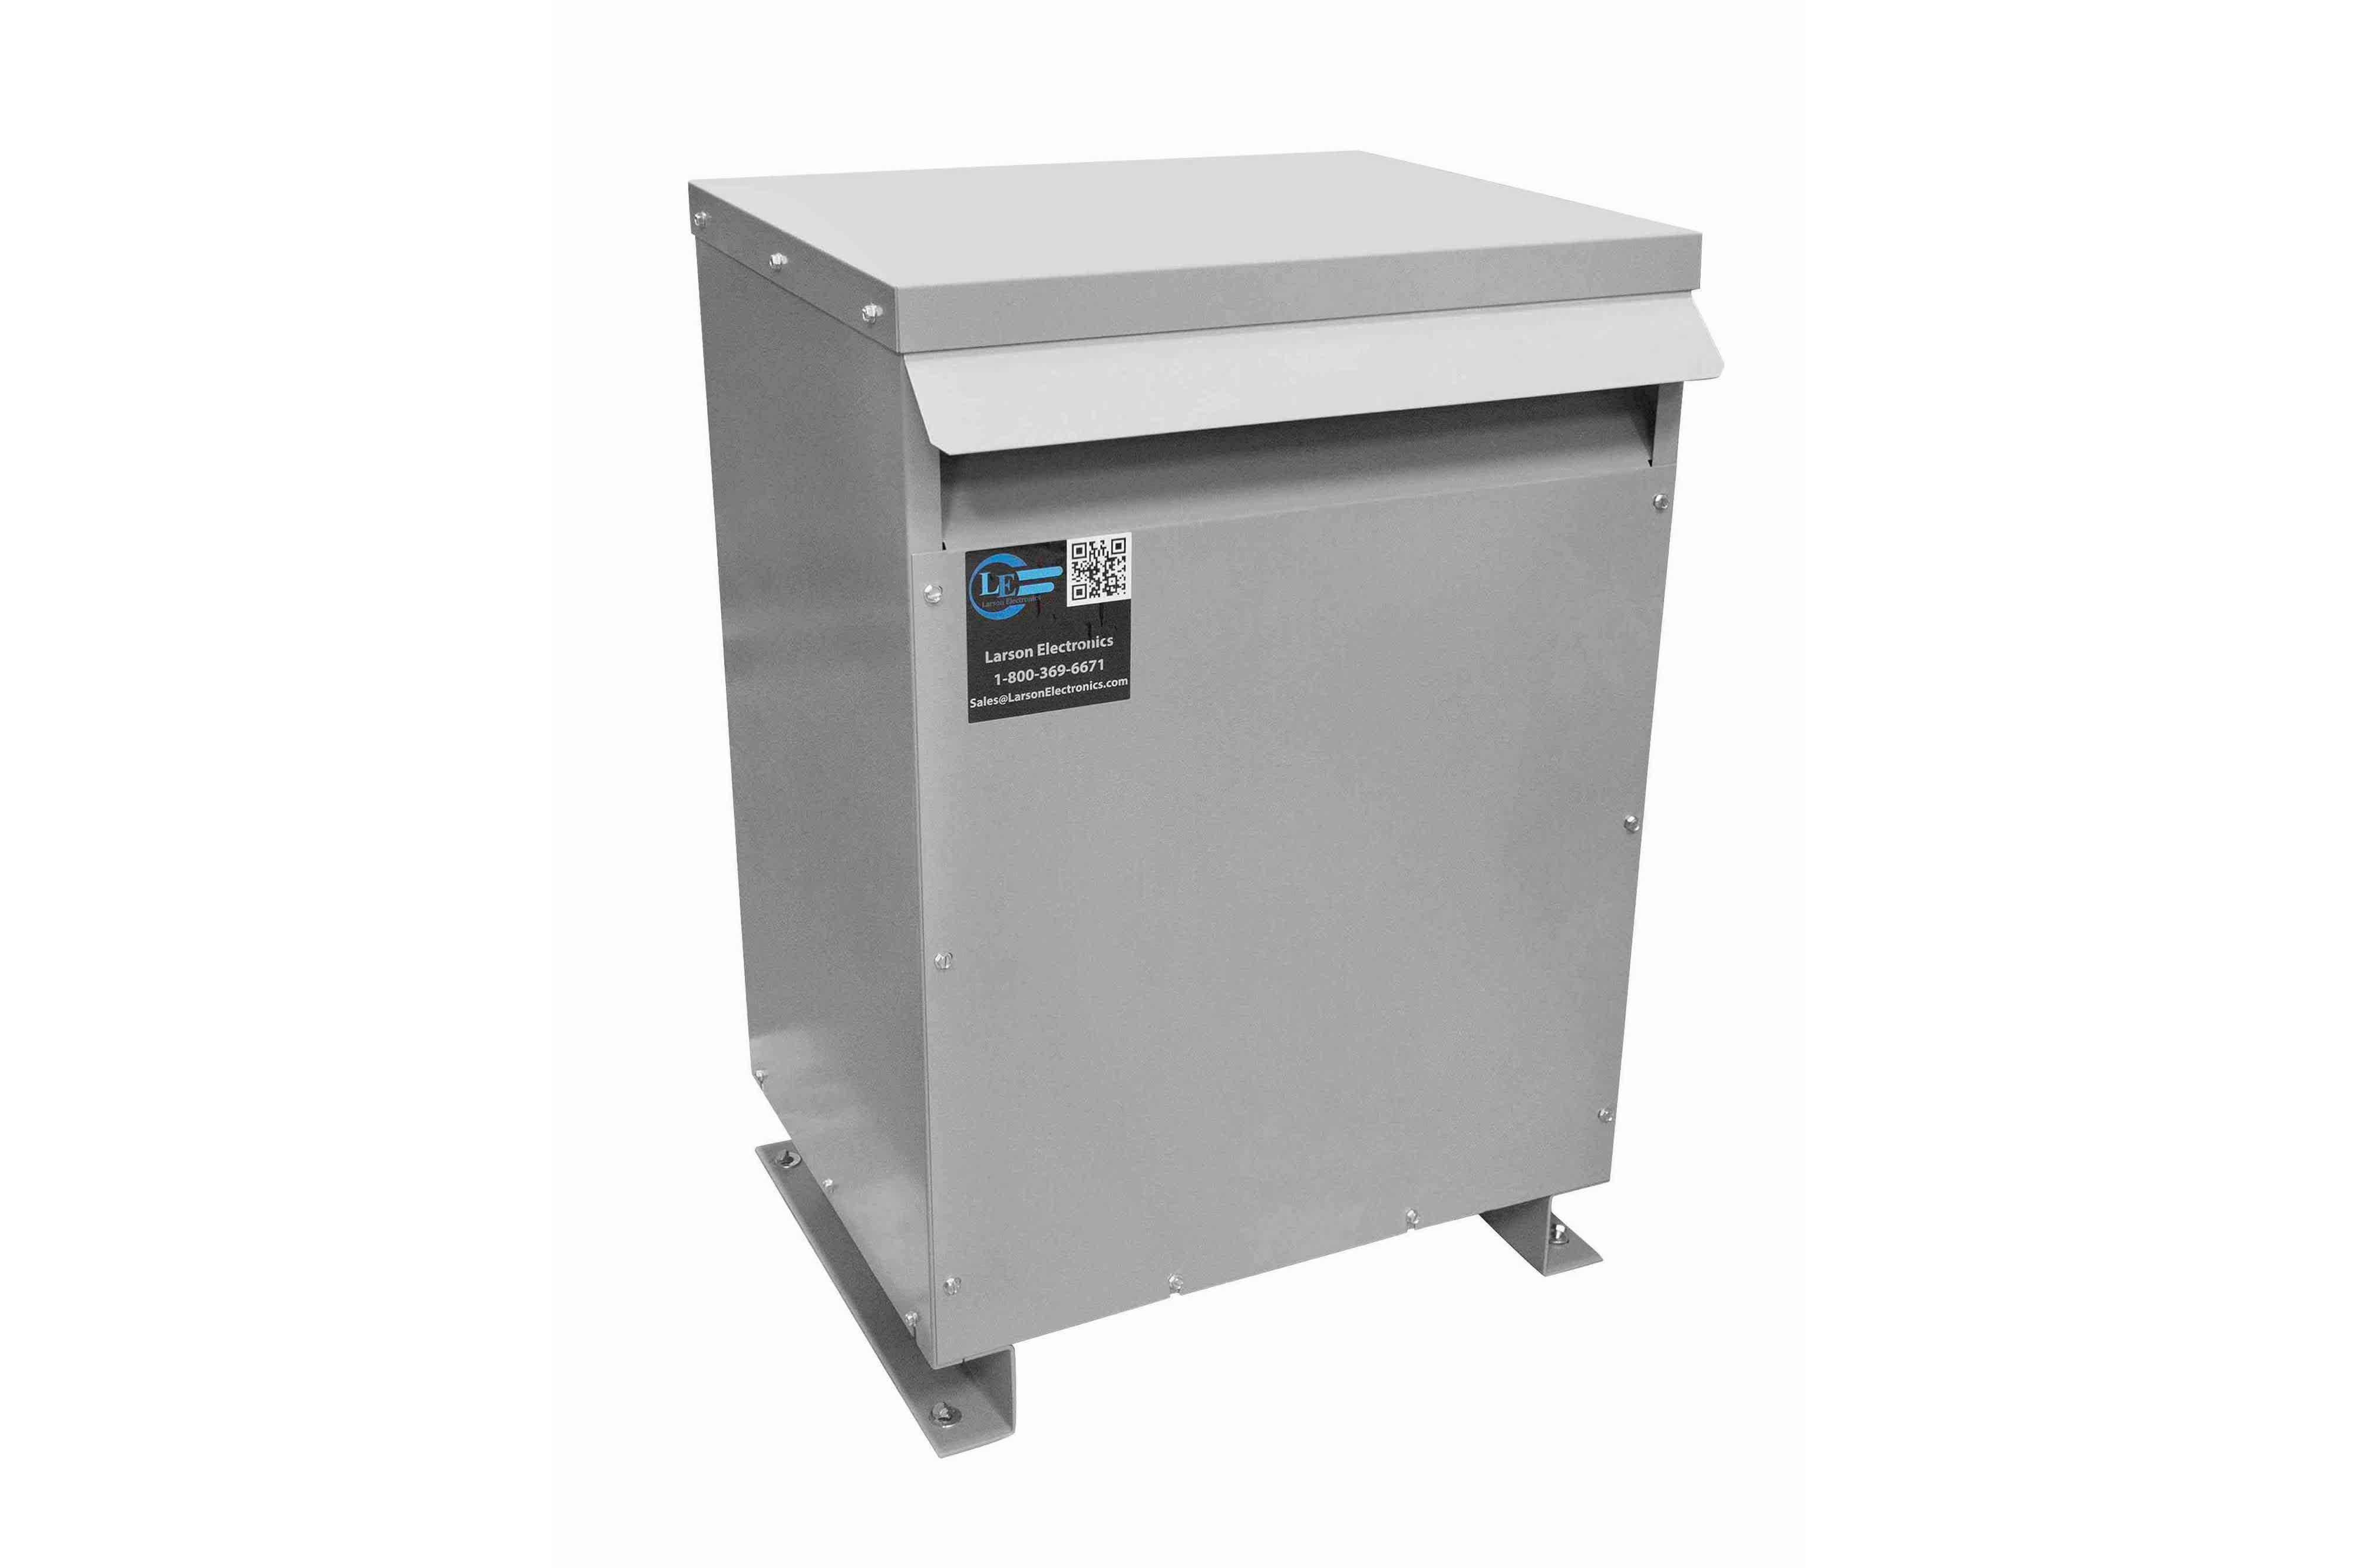 22.5 kVA 3PH Isolation Transformer, 480V Wye Primary, 415V Delta Secondary, N3R, Ventilated, 60 Hz